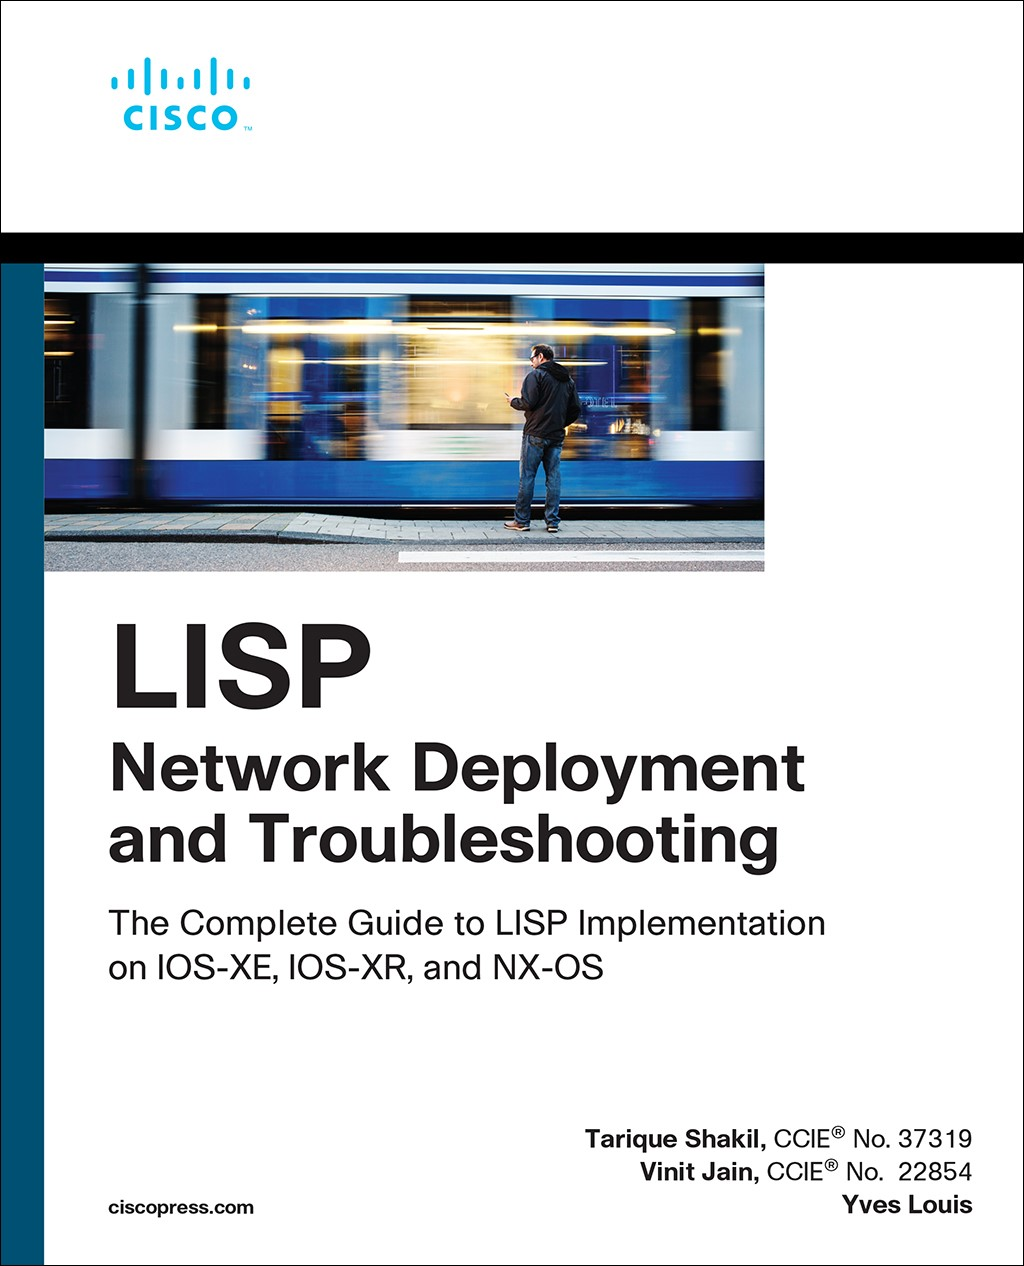 LISP Network Deployment and Troubleshooting: The Complete Guide to LISP Implementation on IOS, IOS-XR, and NX-OS